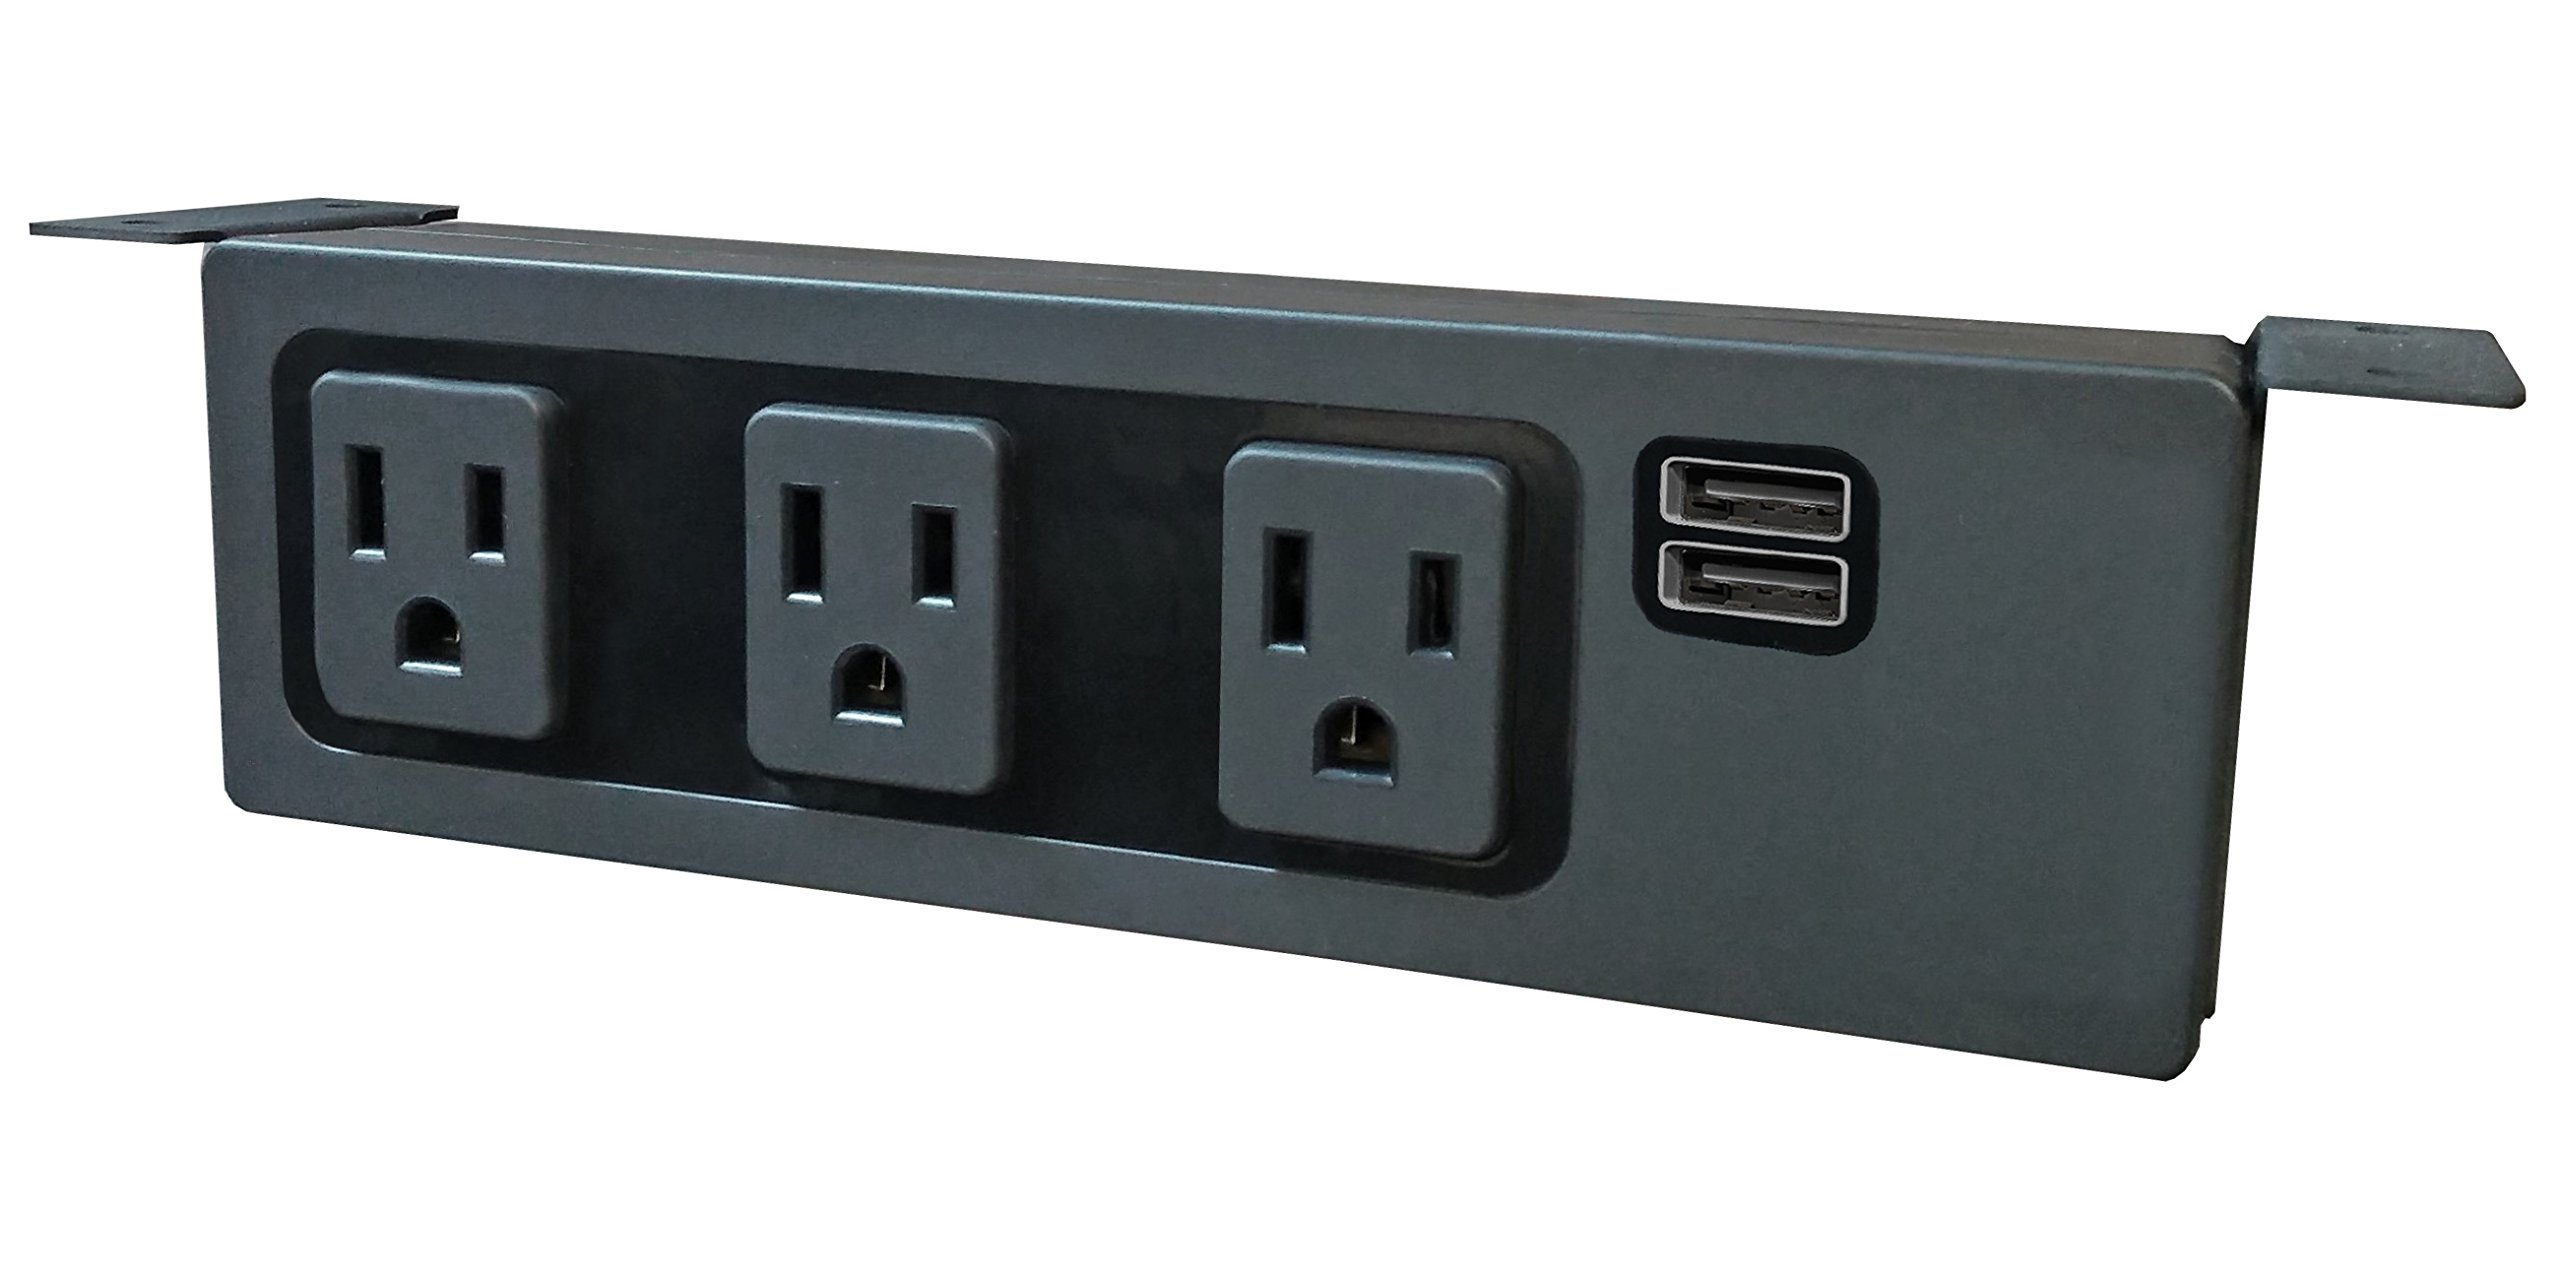 Electriduct Under The Desk/Table Power Center - 3 Outlets & 2 USB 3.1 Amp Ports (Black)